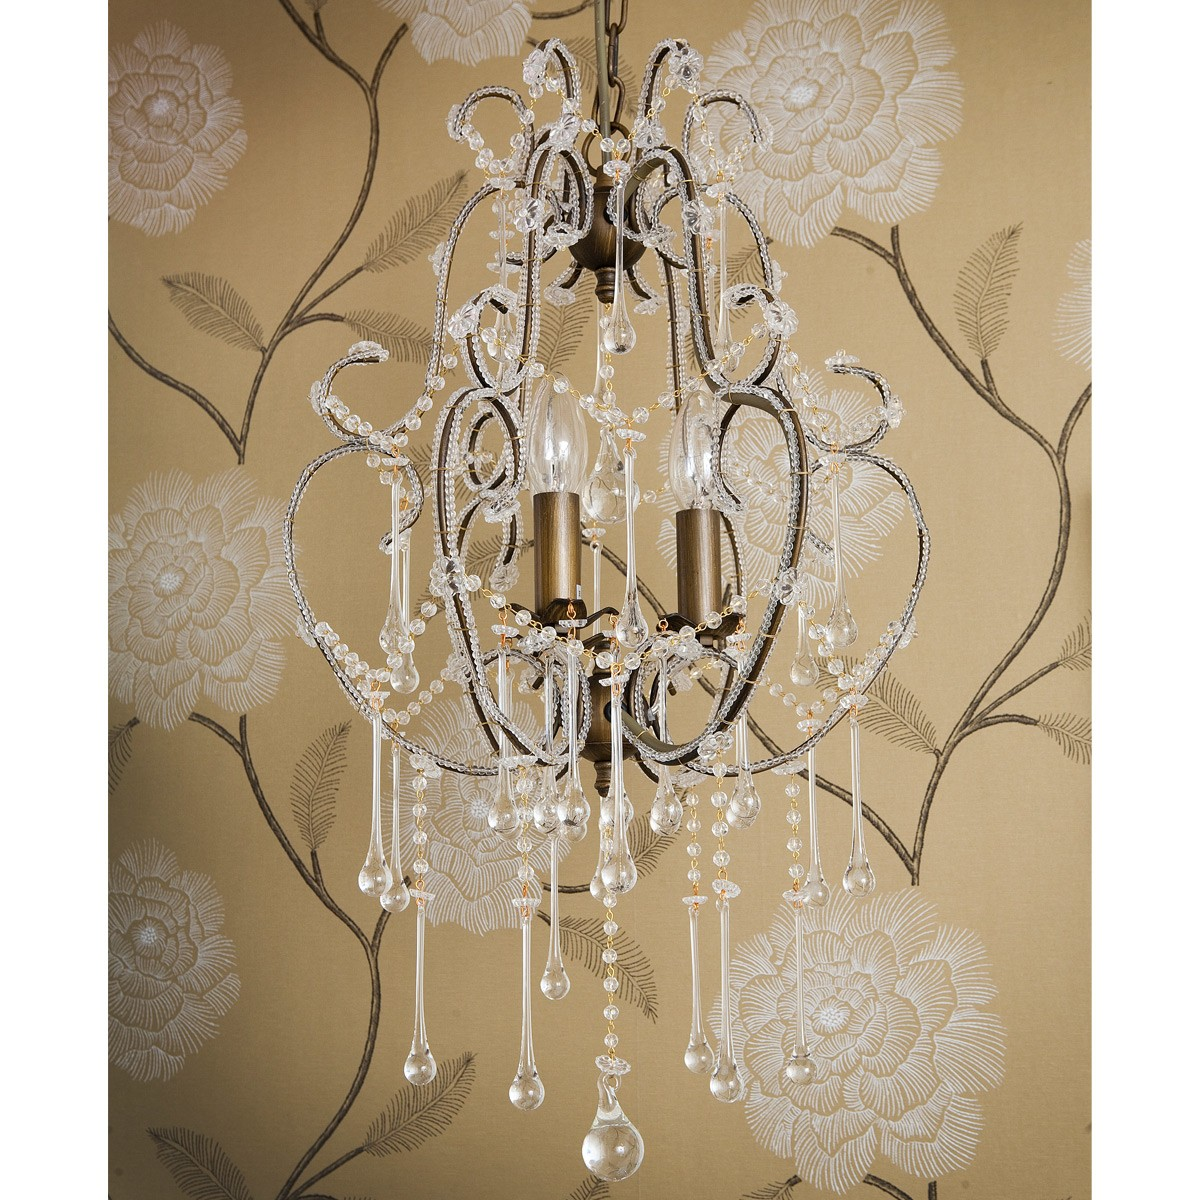 Very Best The French Bedroom Company Chandelier 1200 x 1200 · 490 kB · jpeg